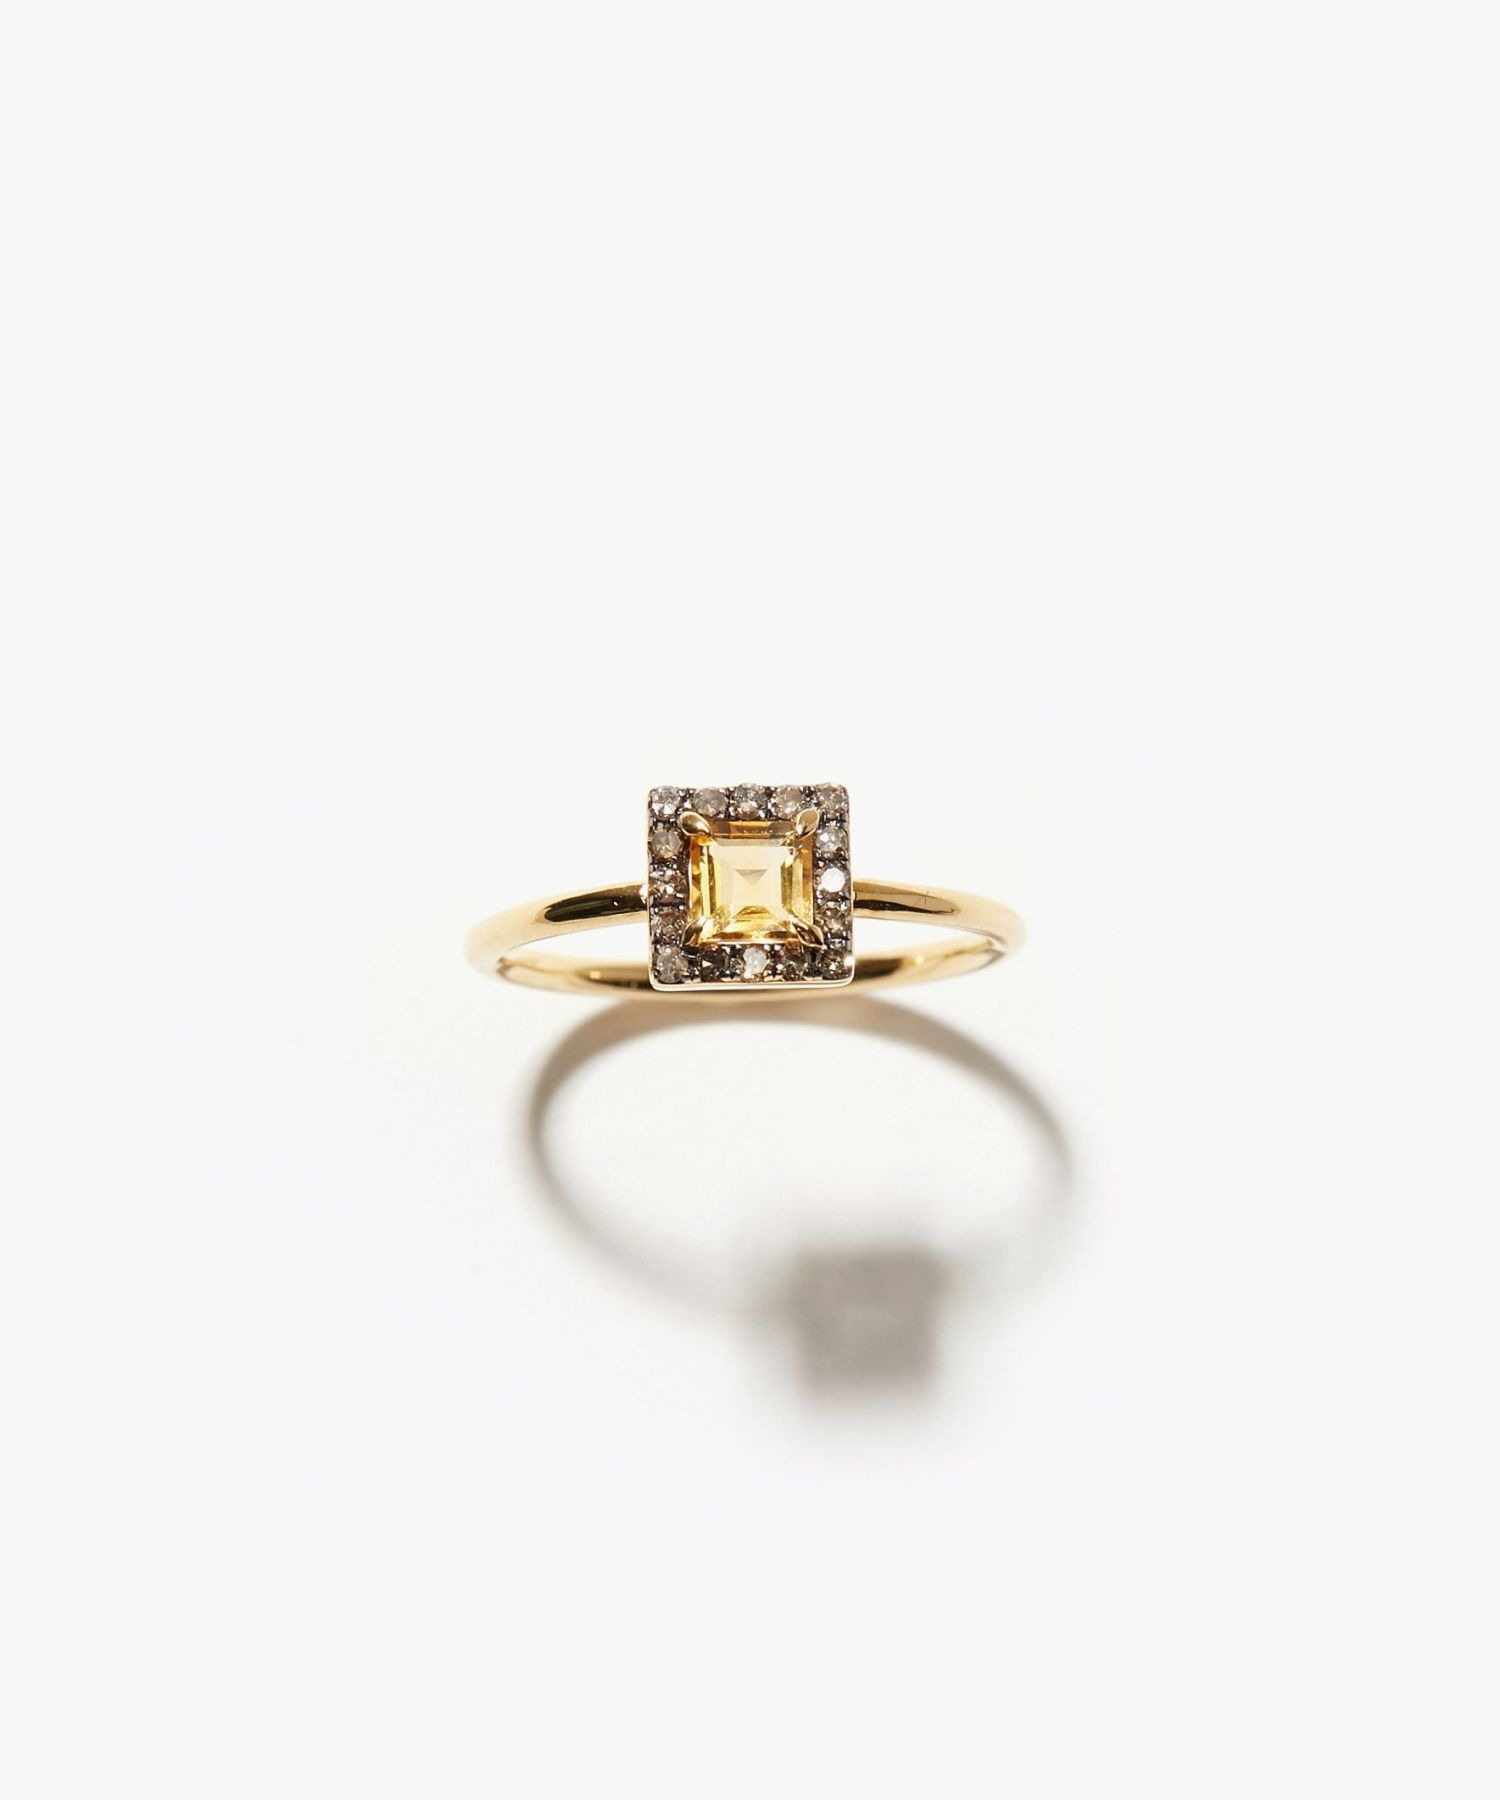 [elafonisi] square citrine pave diamond ring